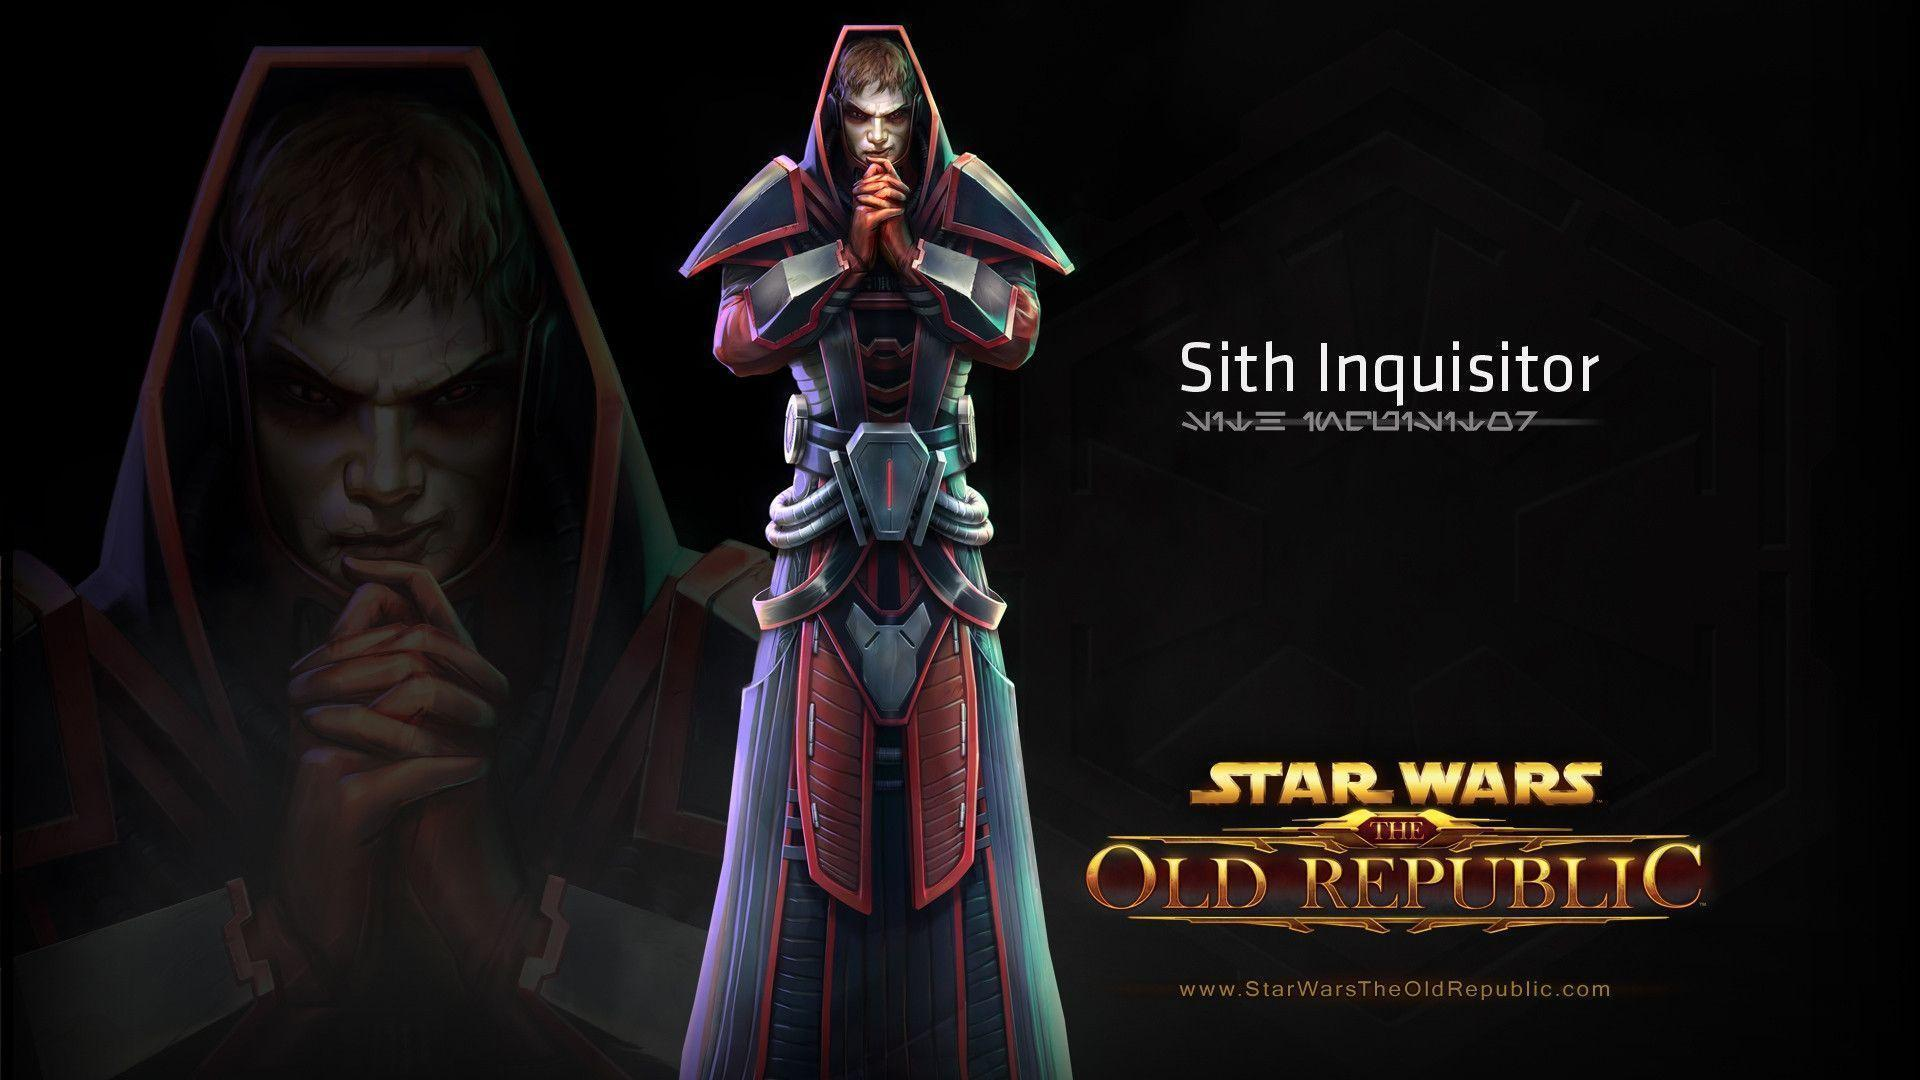 Download Wallpapers 1920x1080 star wars the old republic, sith